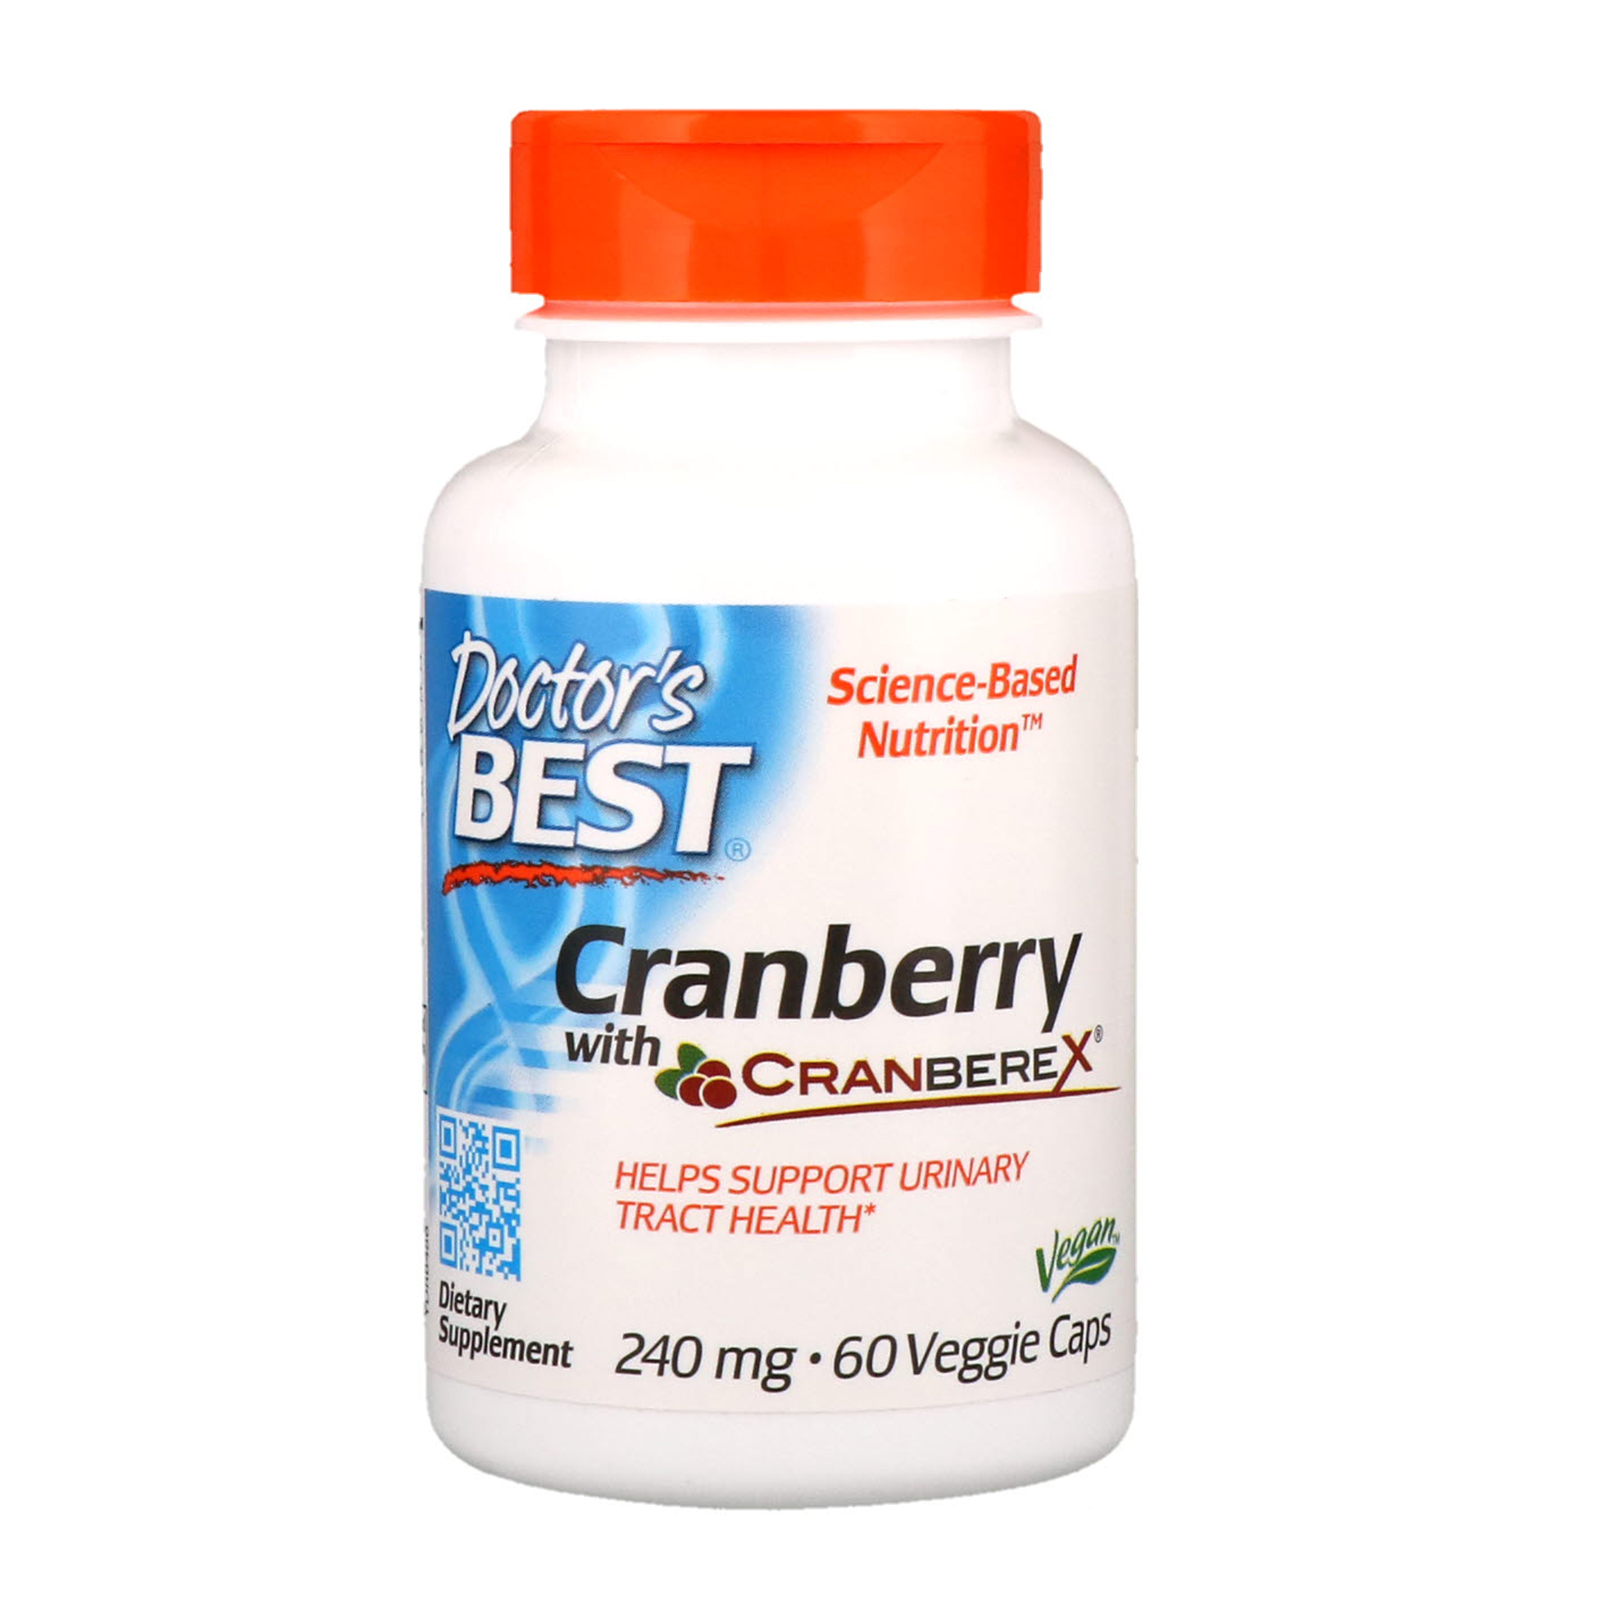 DOCTORS BEST Cranberry with cranberex 240mg 60Vegie caps